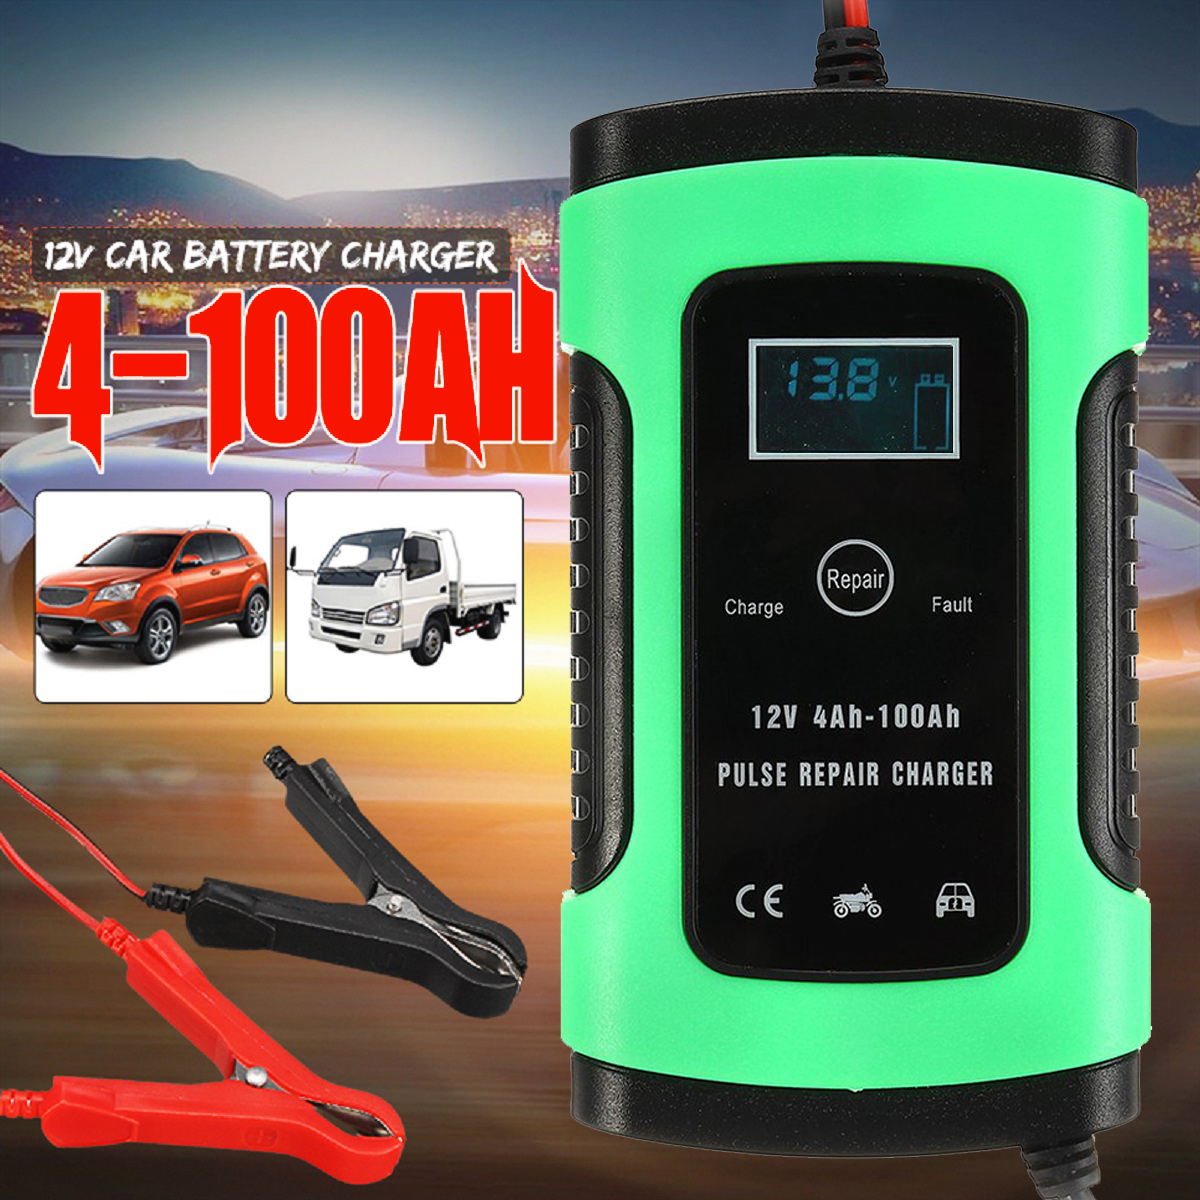 12V 5A Auto Car Intelligent Battery Charger Jump Starter LCD Intelligent 100-240V 100AH Pulse Repair Type